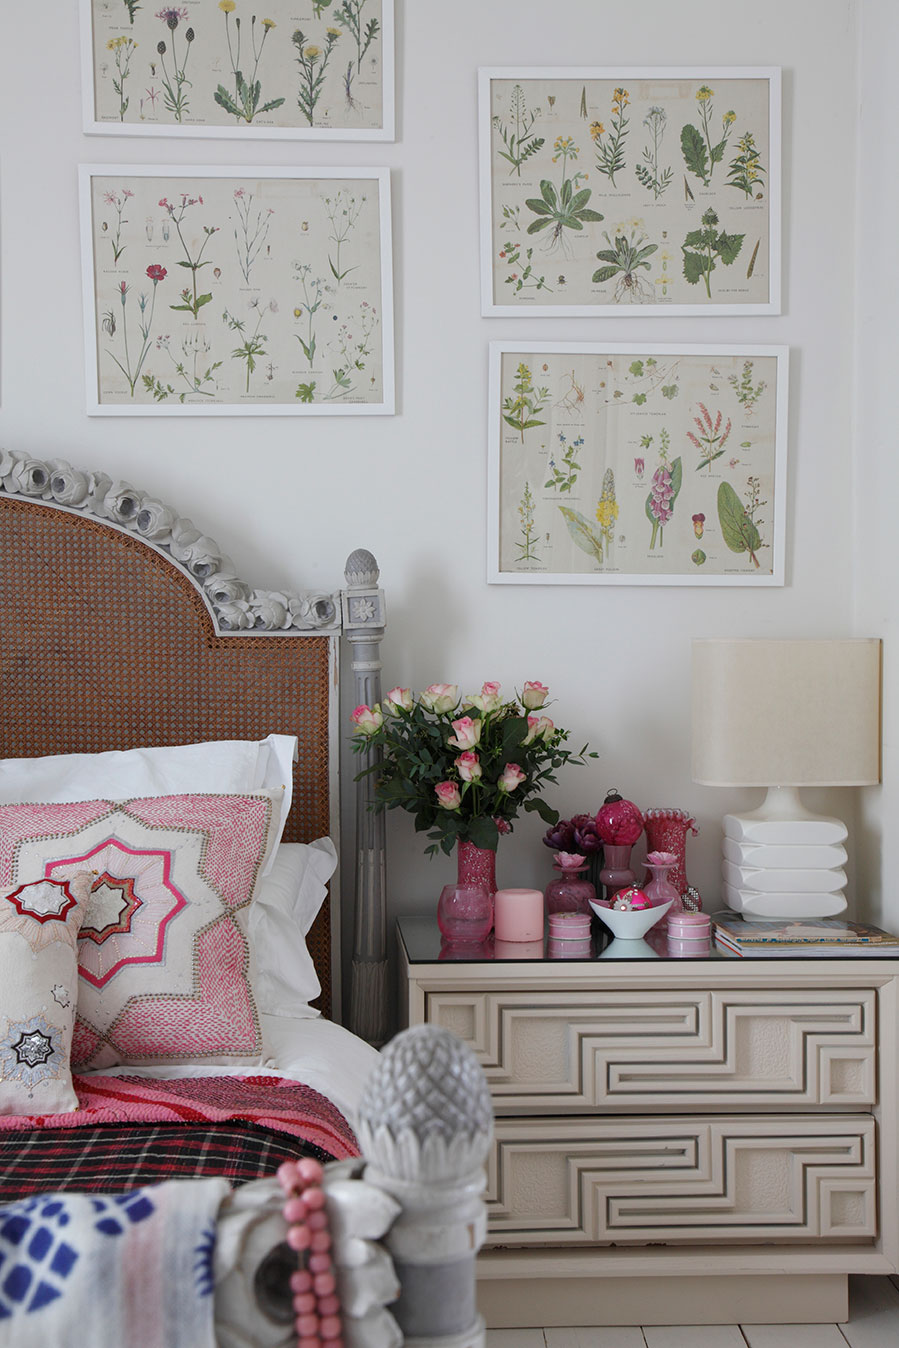 Tracey Boyd's bedroom shot for the Saturday Times Magazine